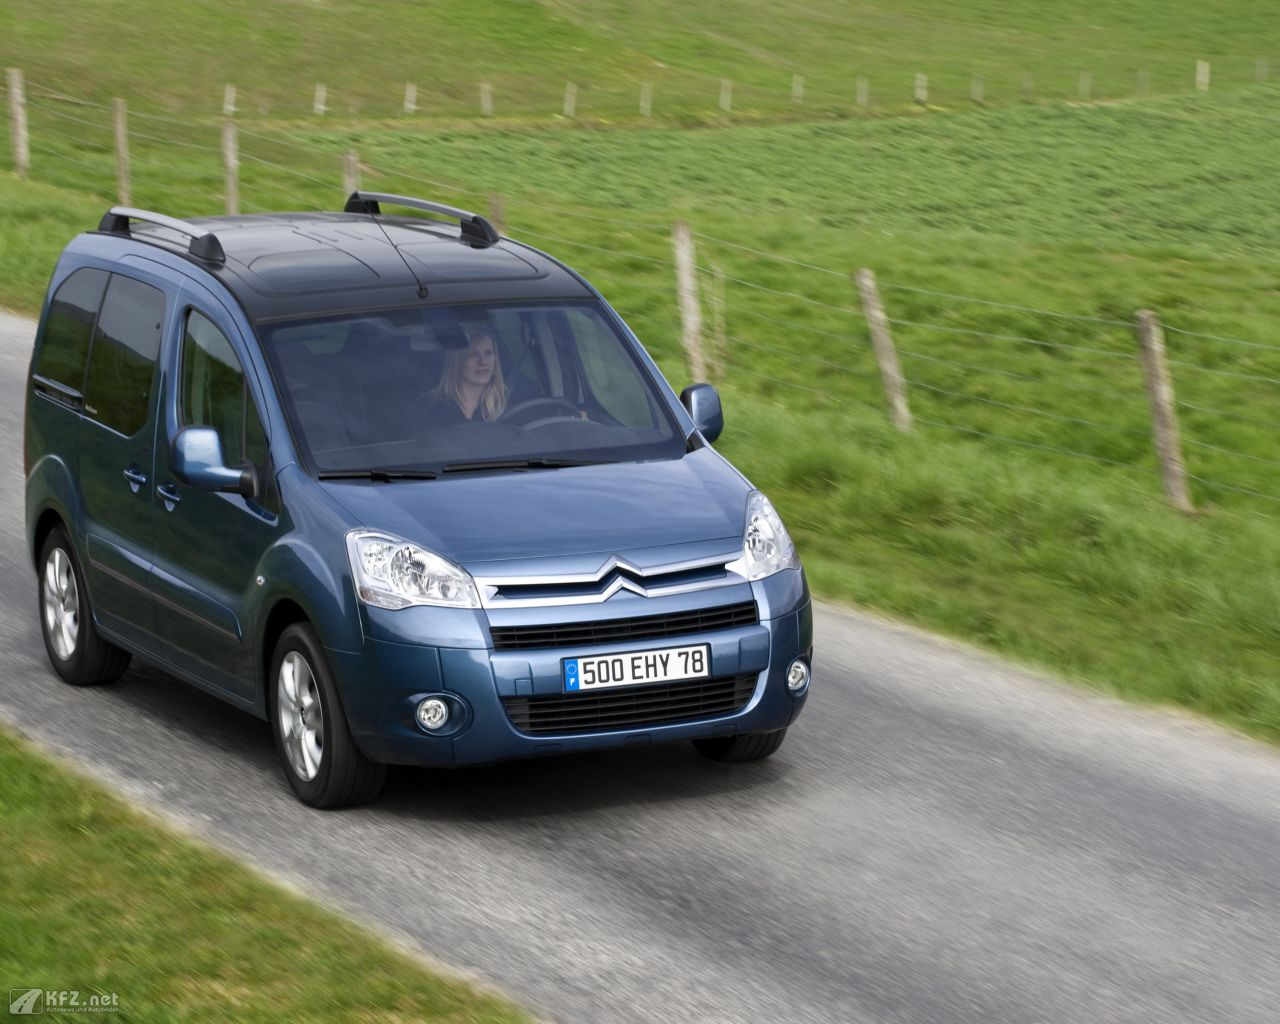 citroen-berlingo-1280x1024-61